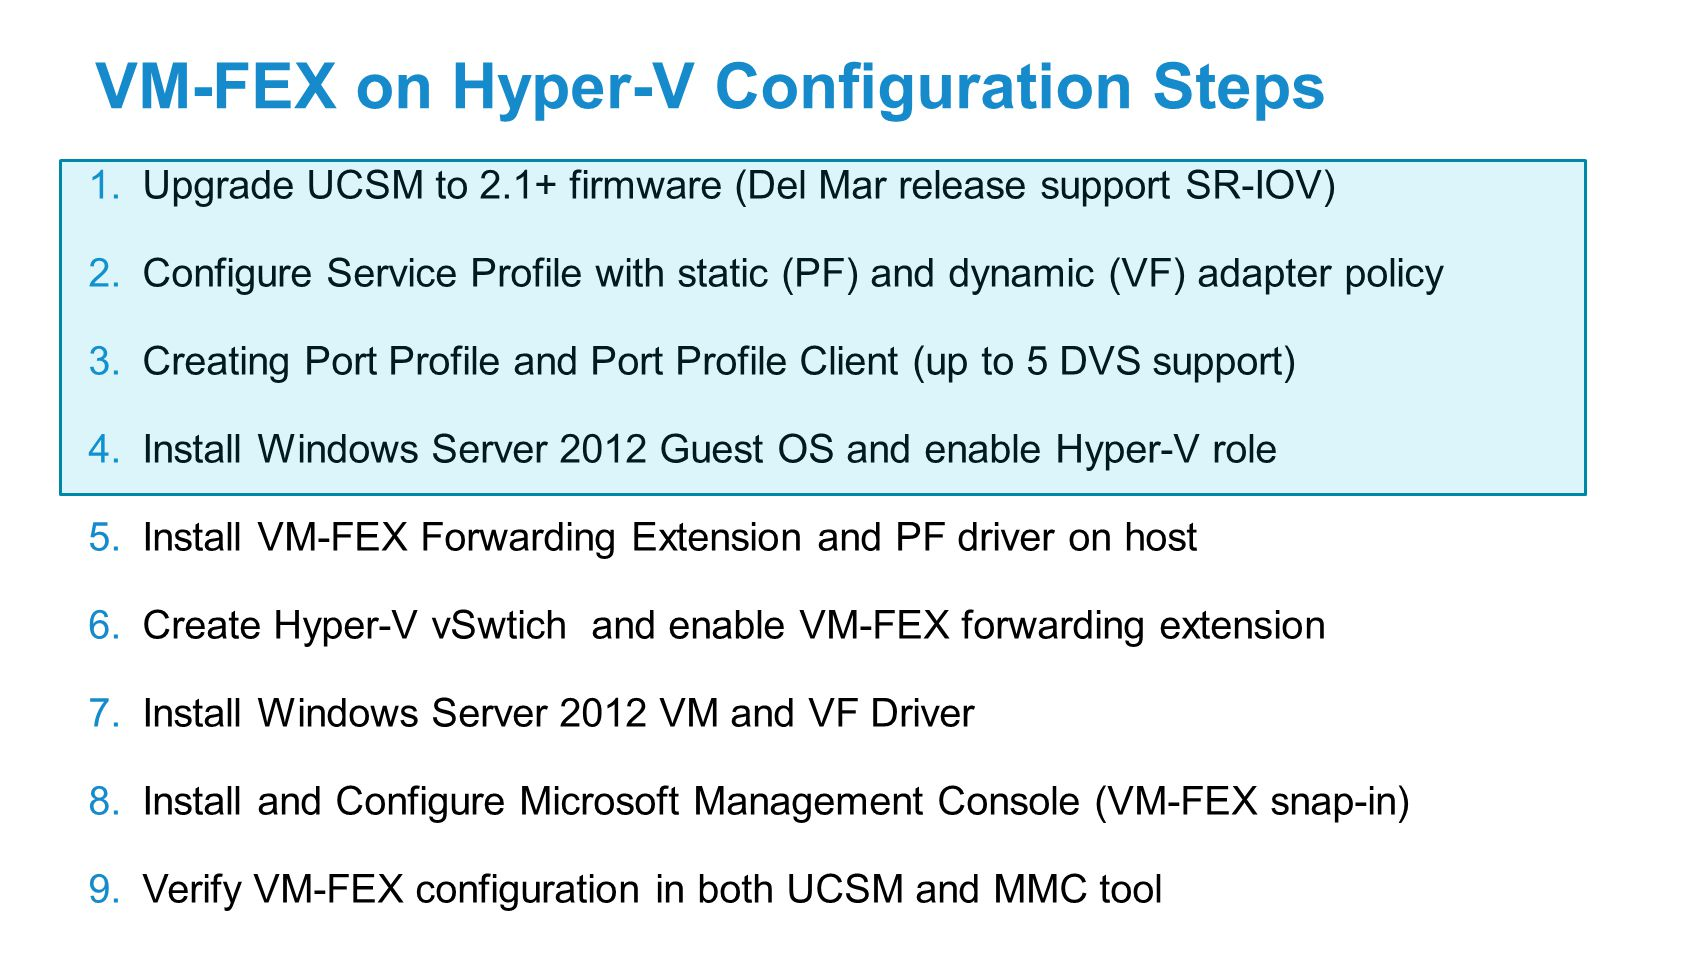 VM-FEX on Hyper-V Configuration Steps 1.Upgrade UCSM to 2.1+ firmware (Del Mar release support SR-IOV) 2.Configure Service Profile with static (PF) an